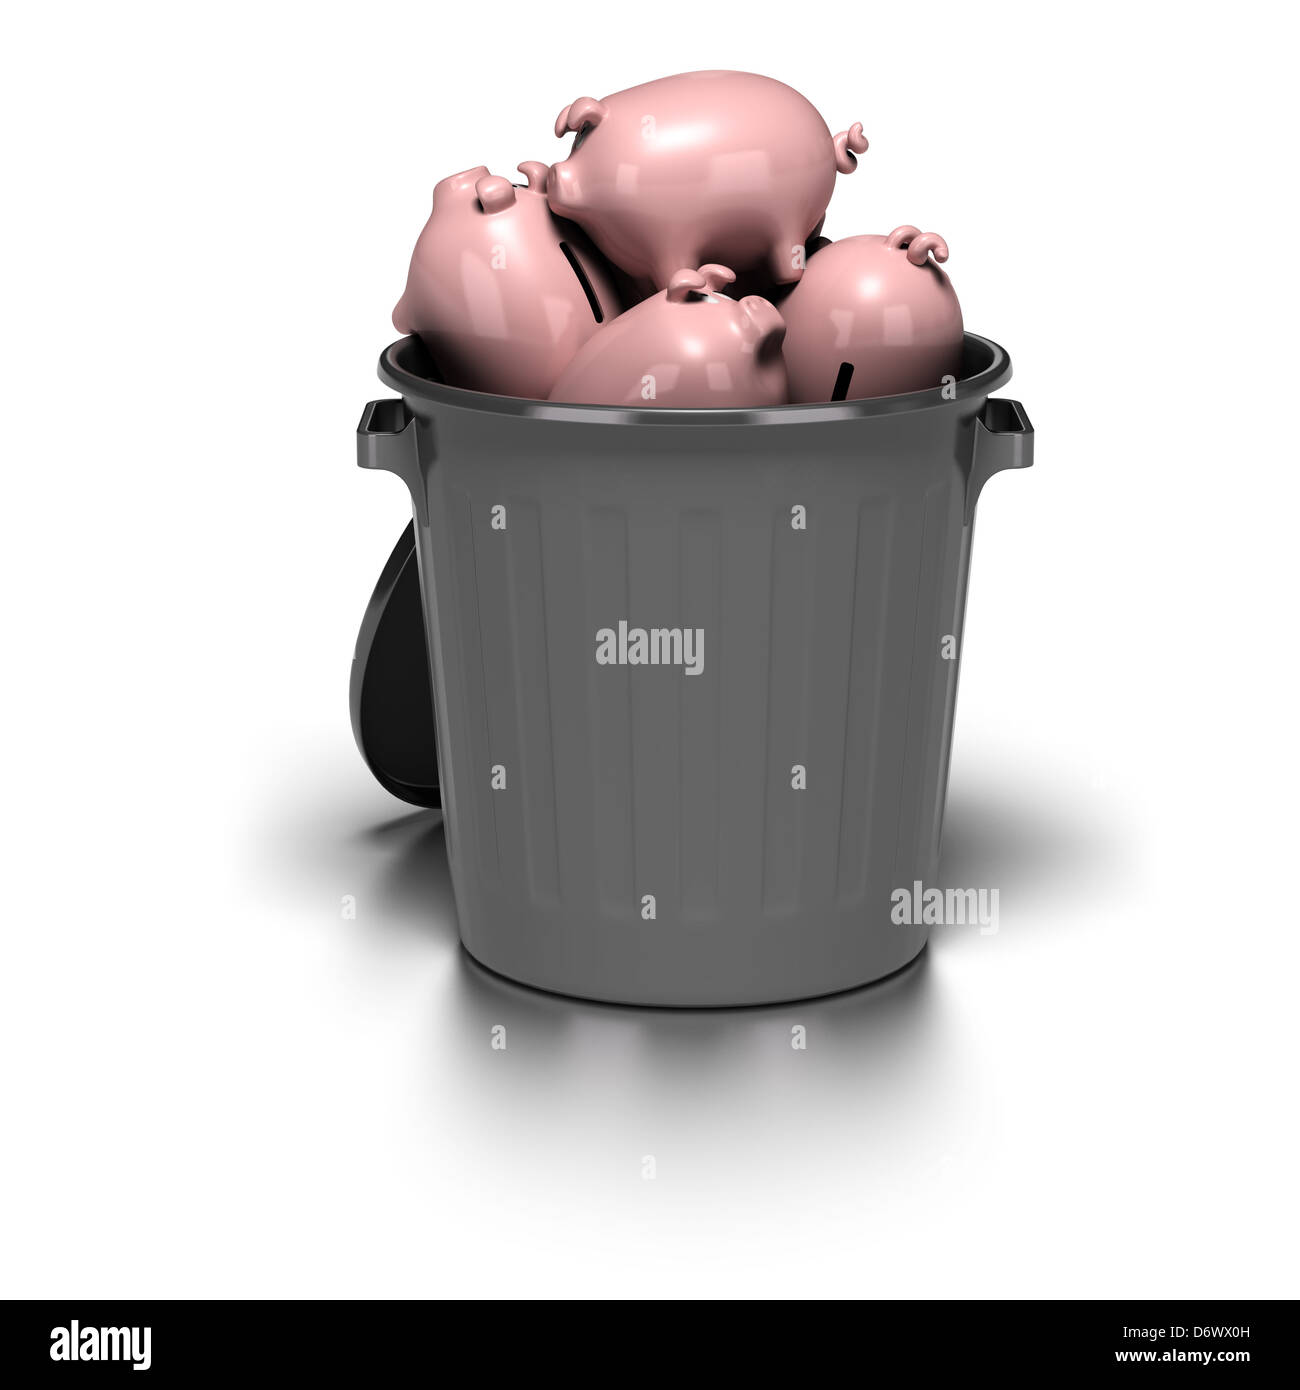 many piggy banks inside a grey garbage can. image is over a white background with reflection - Stock Image